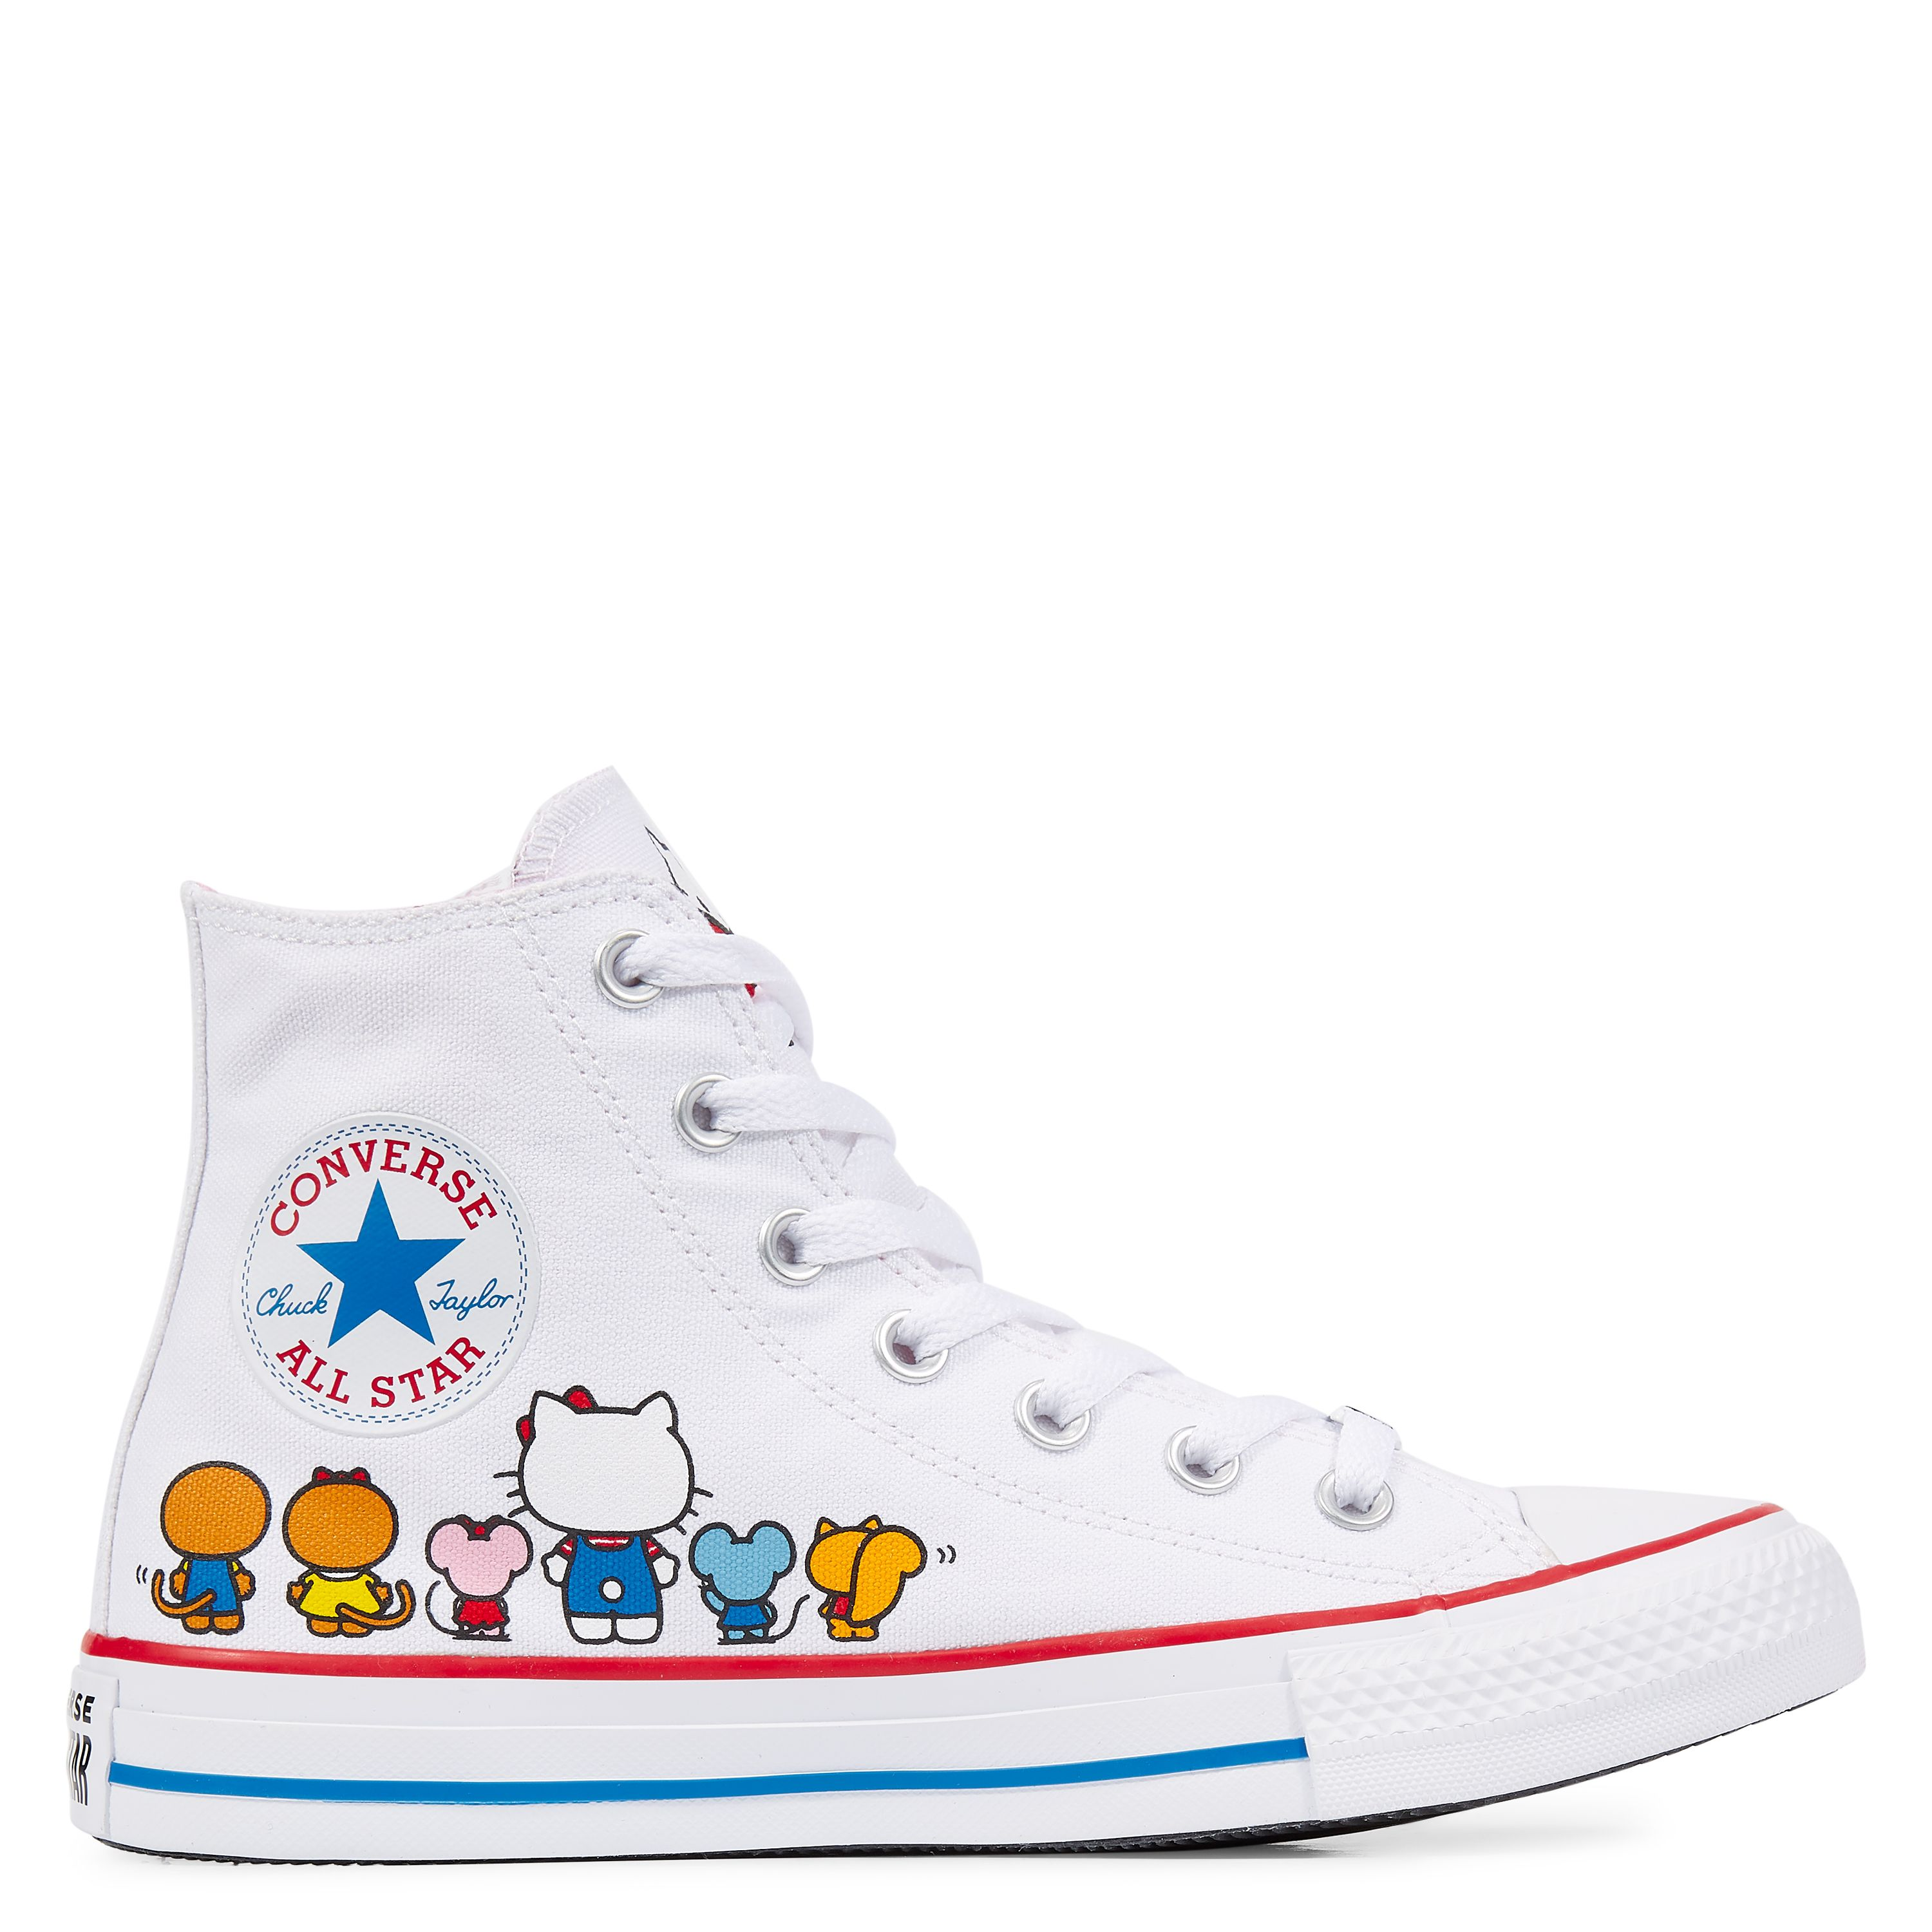 save off ec2a3 63d7c Converse x Hello Kitty Chuck Taylor All Star White Prism Pink White  white prism pink white